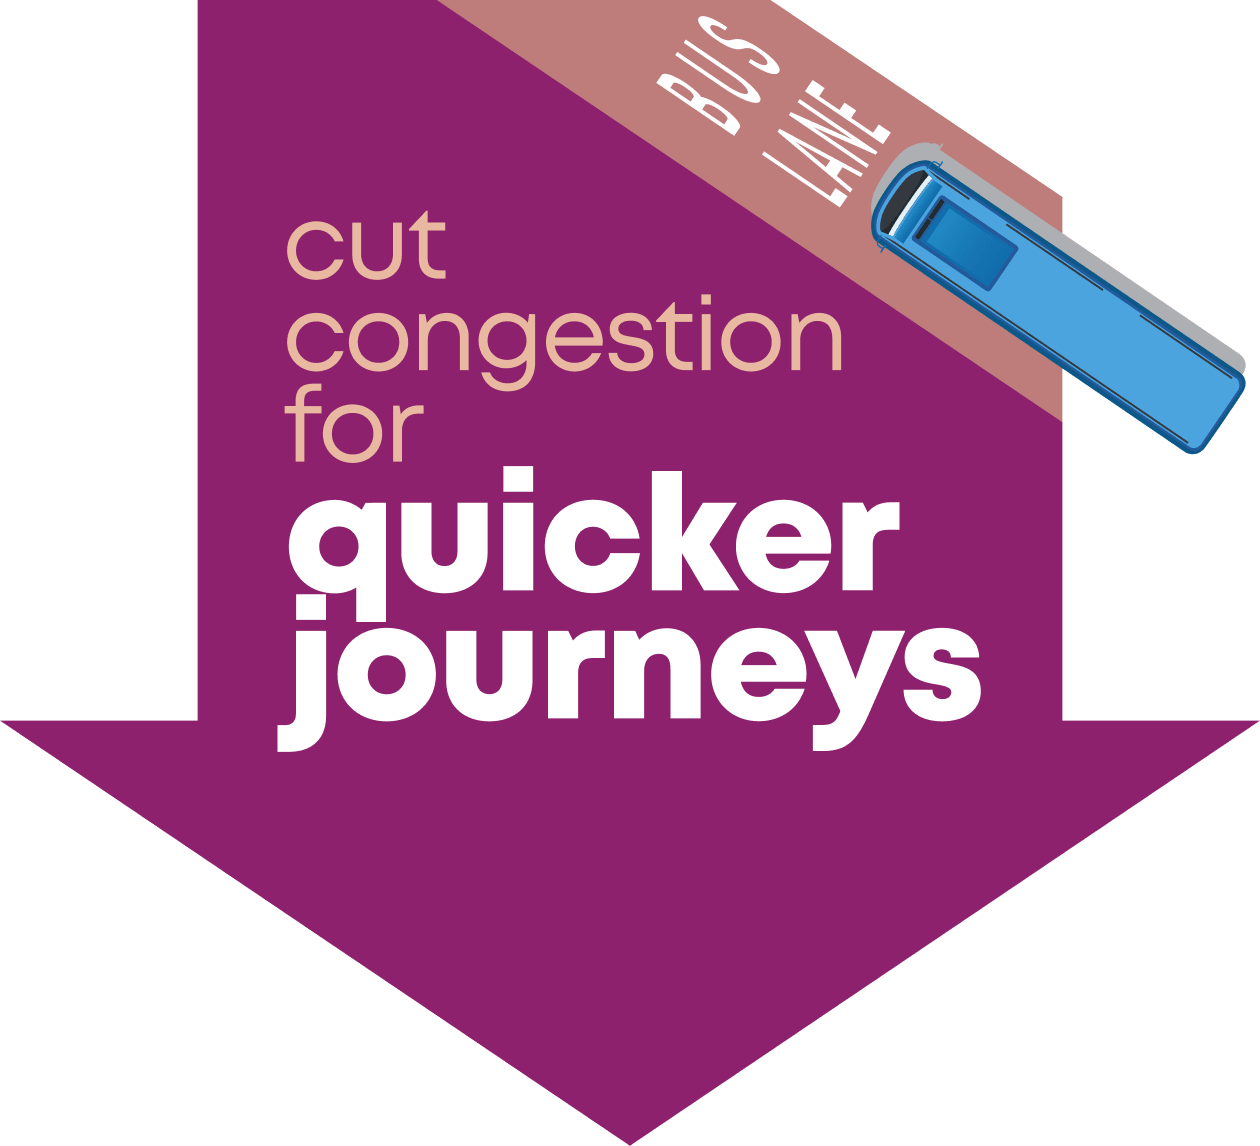 cut congestion for quicker journeys